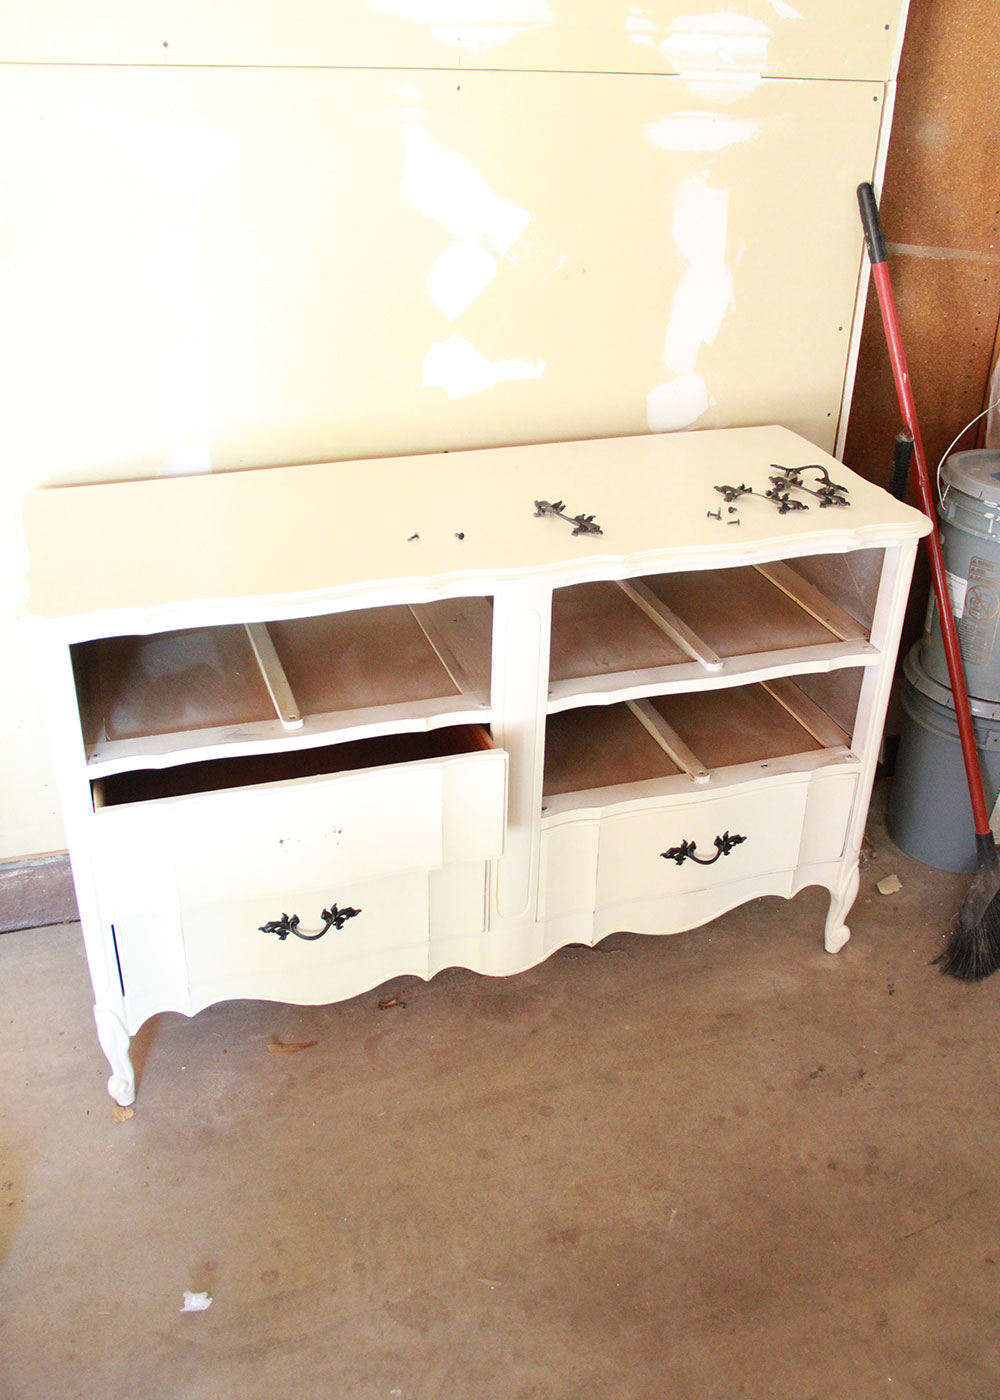 a french provencial dresser found for sale online | thelovedesignedlife.com